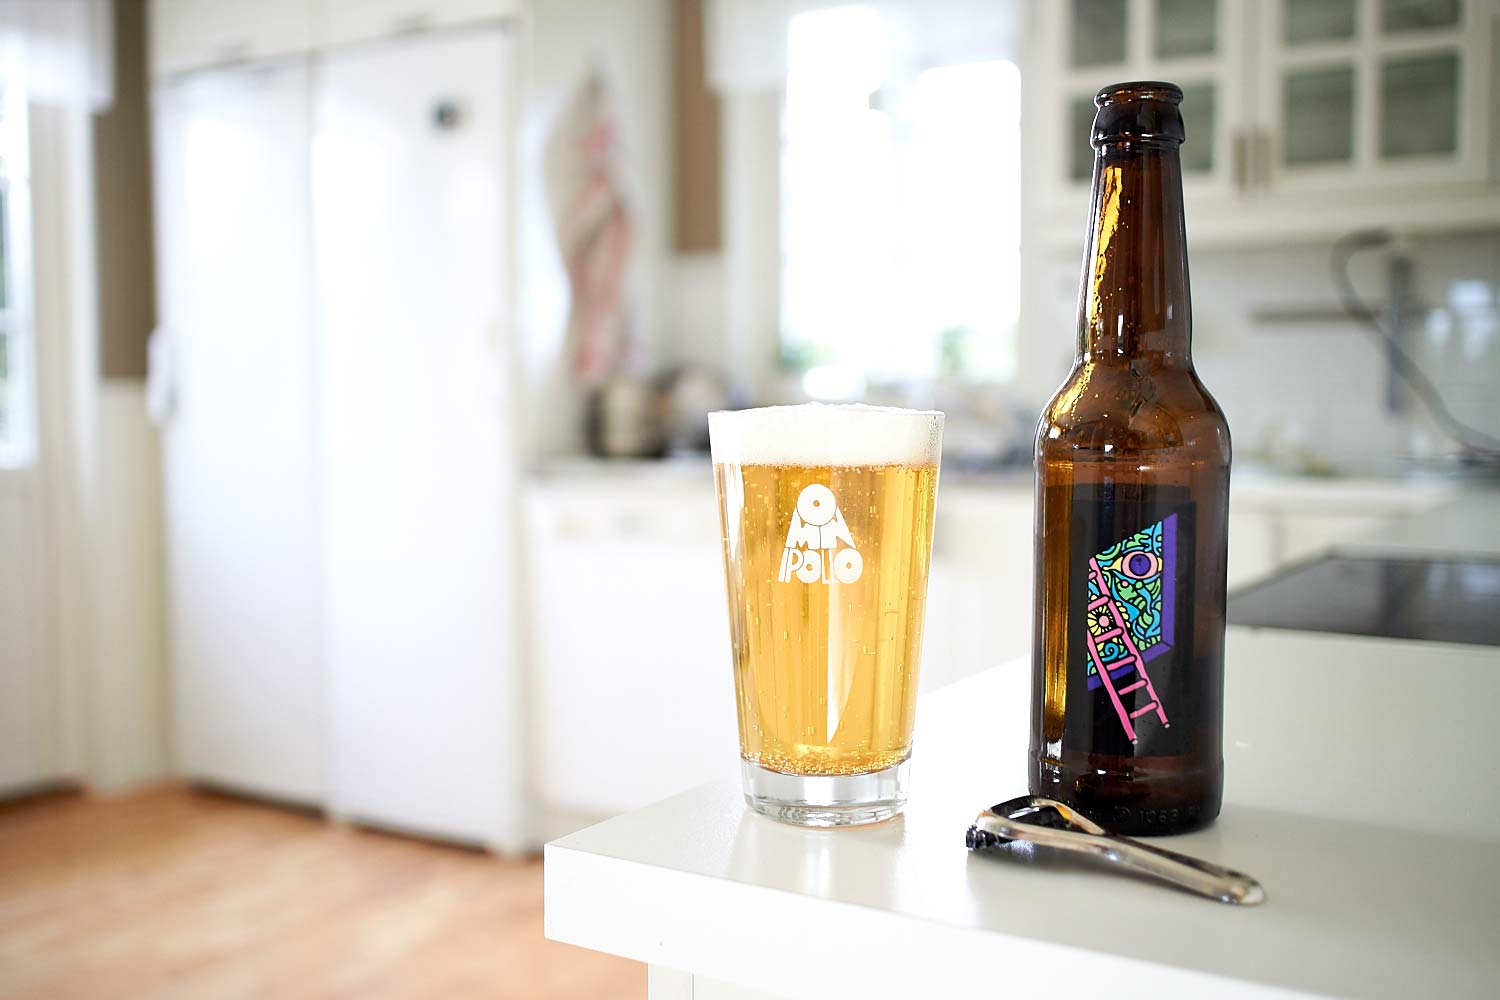 150605_lindh_craft_beer_omnipollo_lifes_a_peach_0001